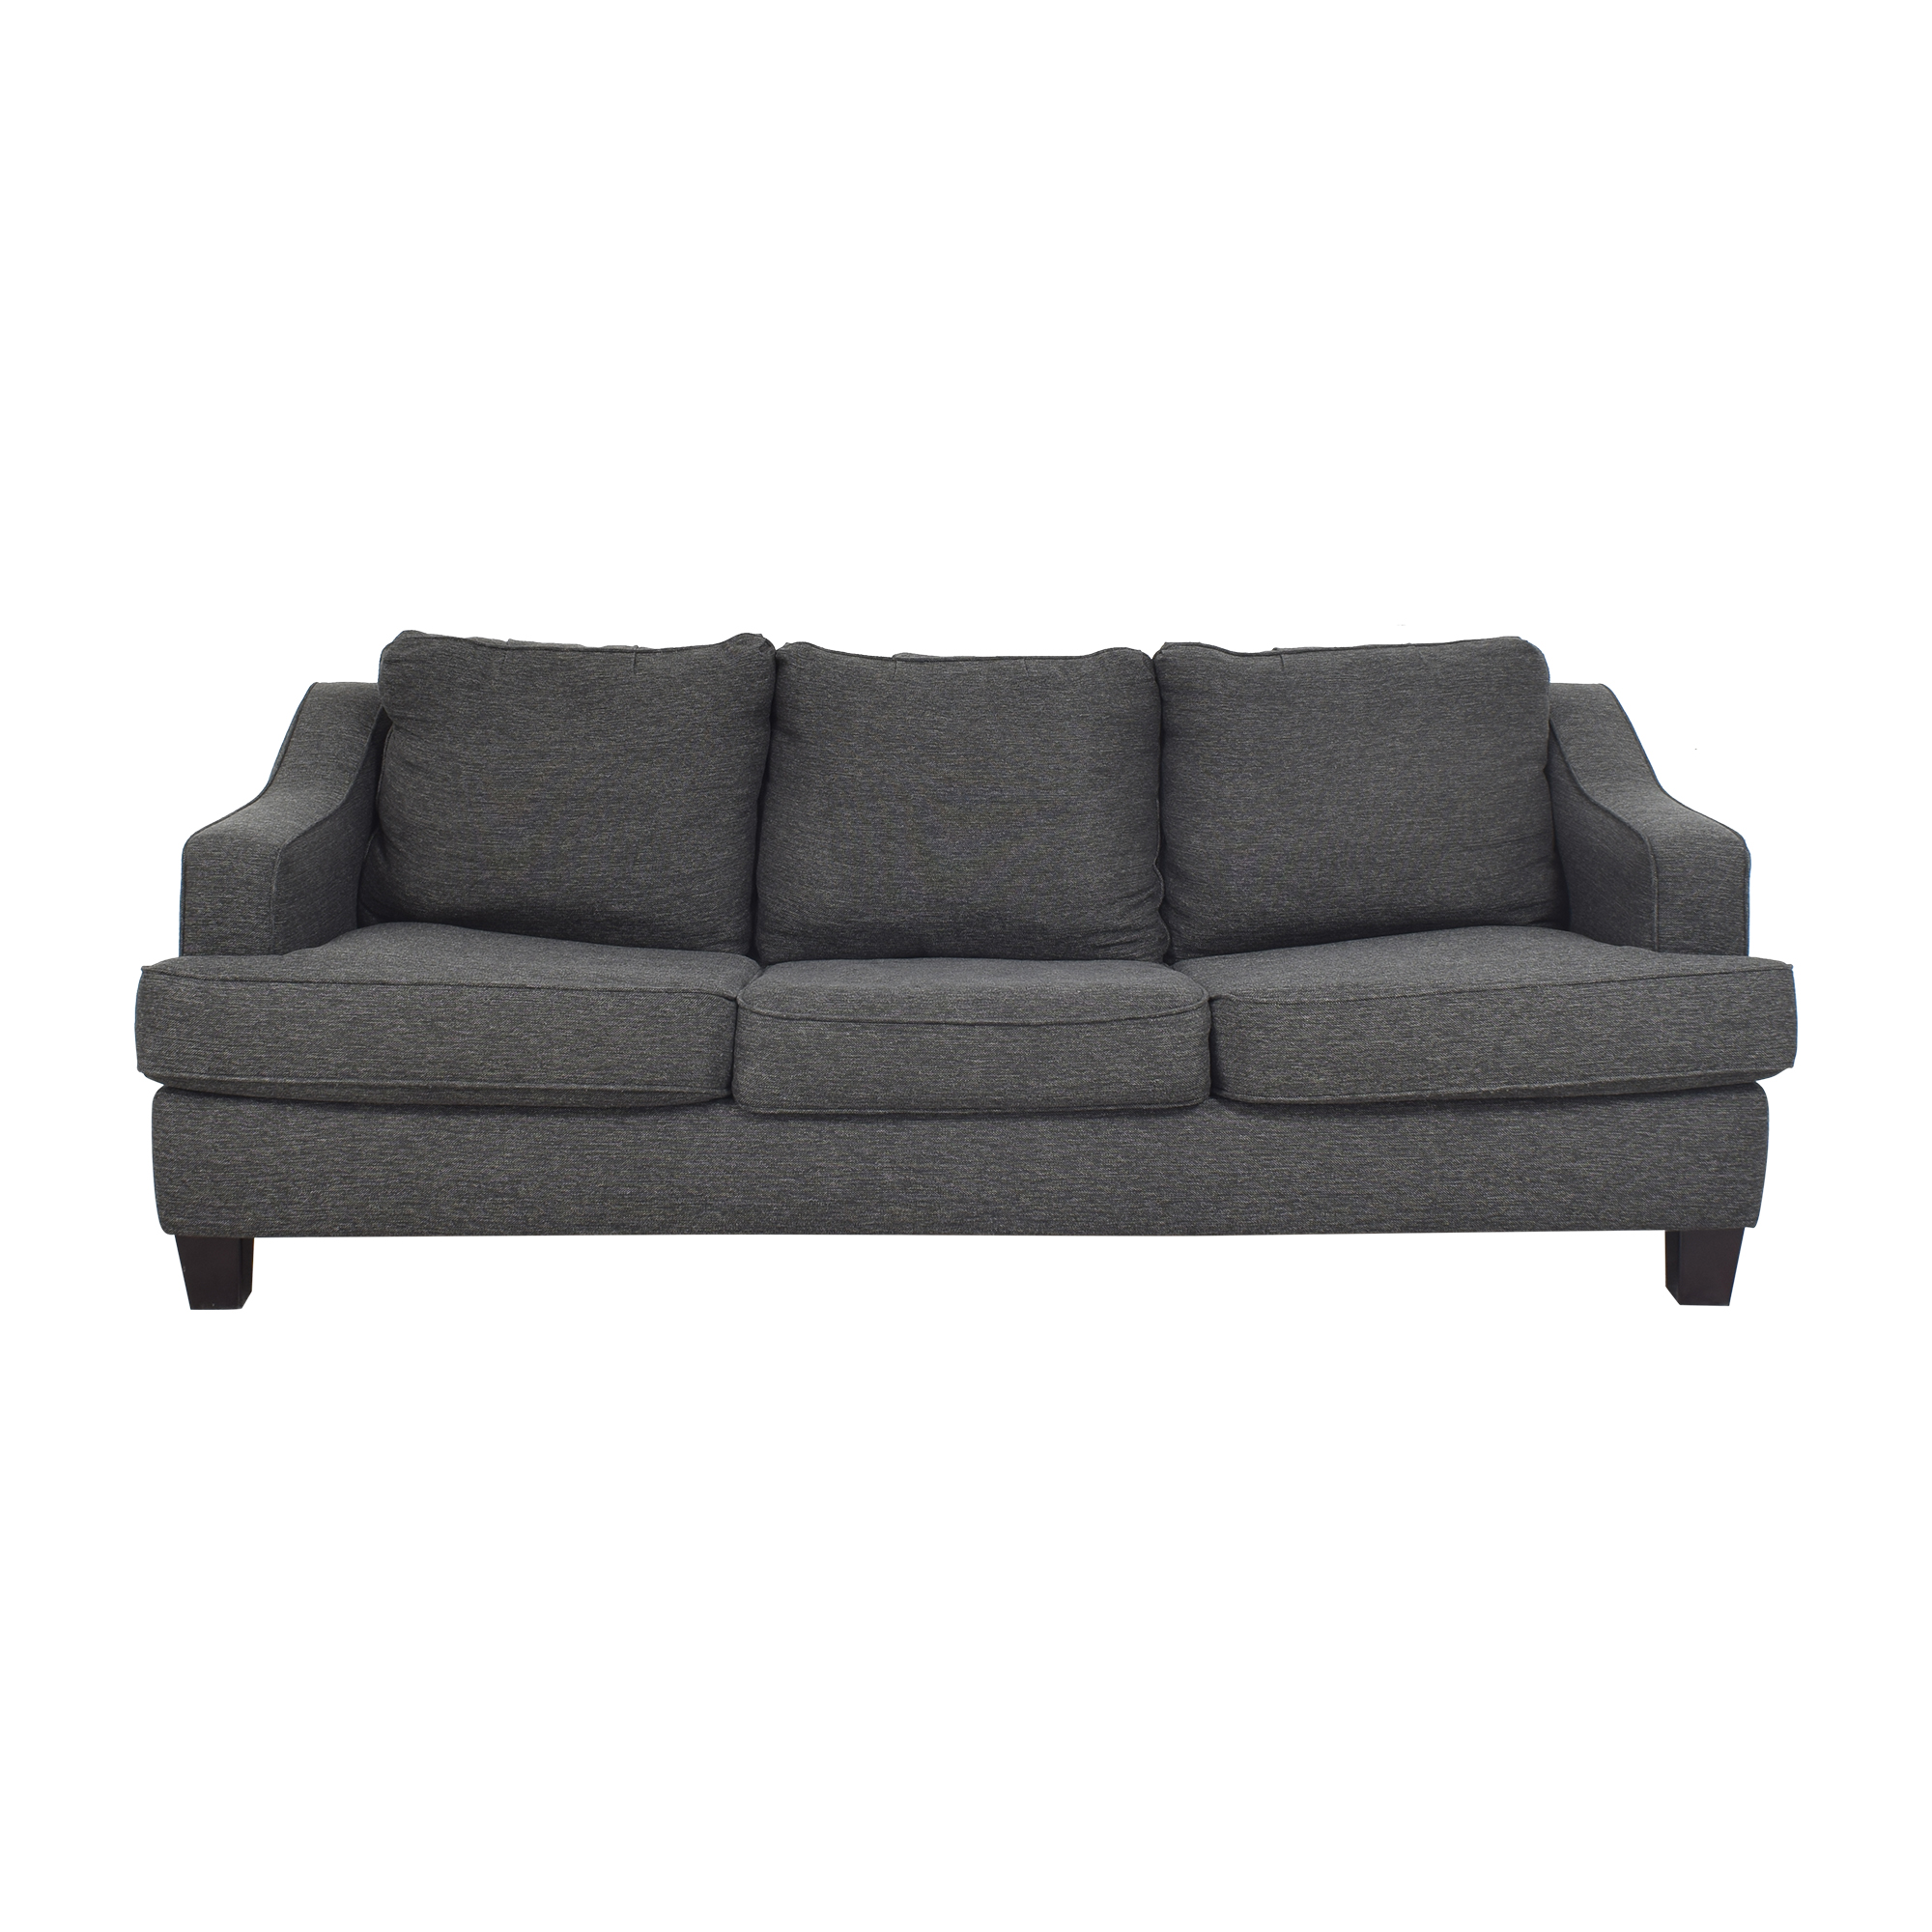 Raymour & Flanigan Raymour & Flanigan Modern Queen Sleeper Sofa second hand